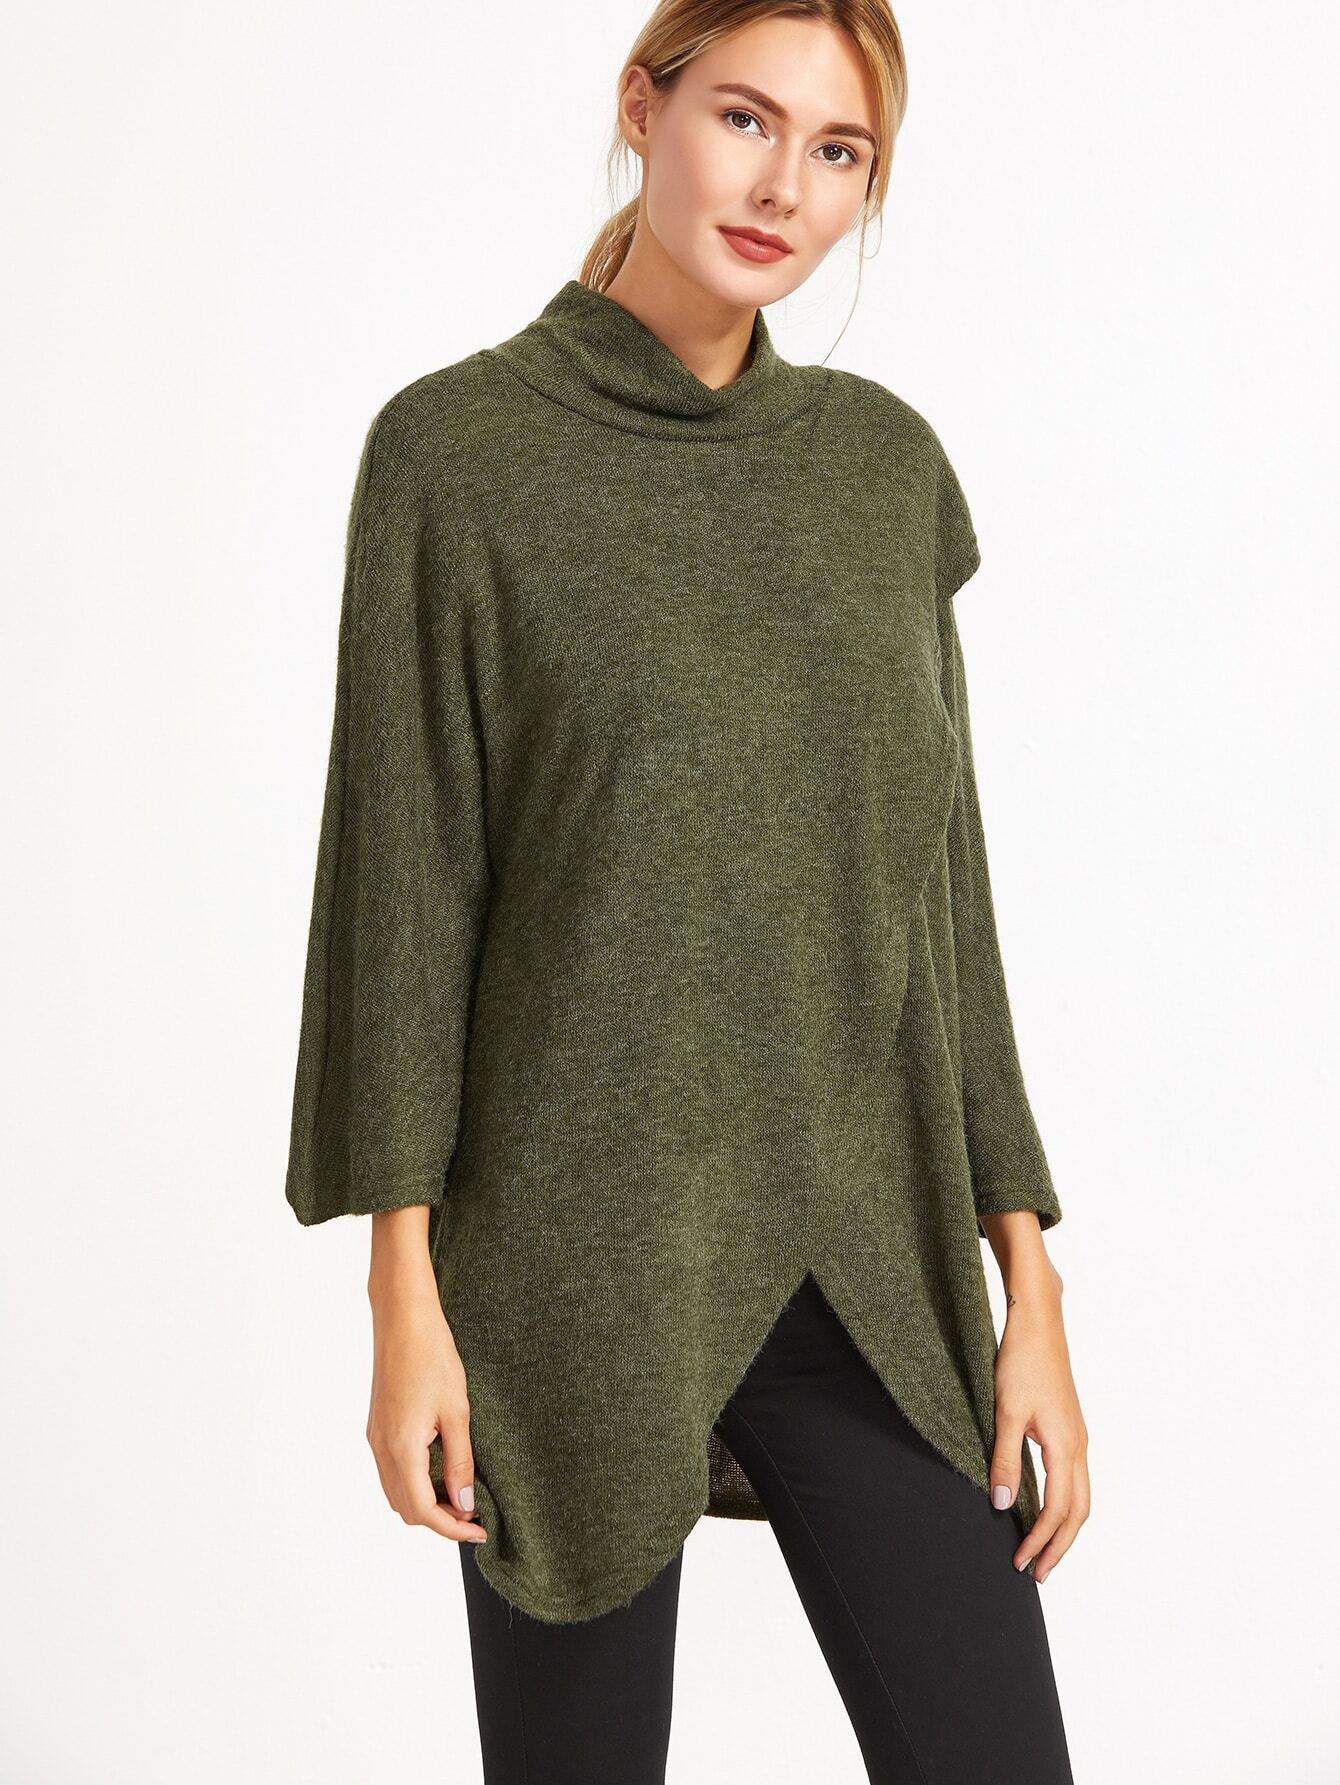 Army Green Cowl Neck Raglan Sleeve Wrap Front Sweater sweater161205301